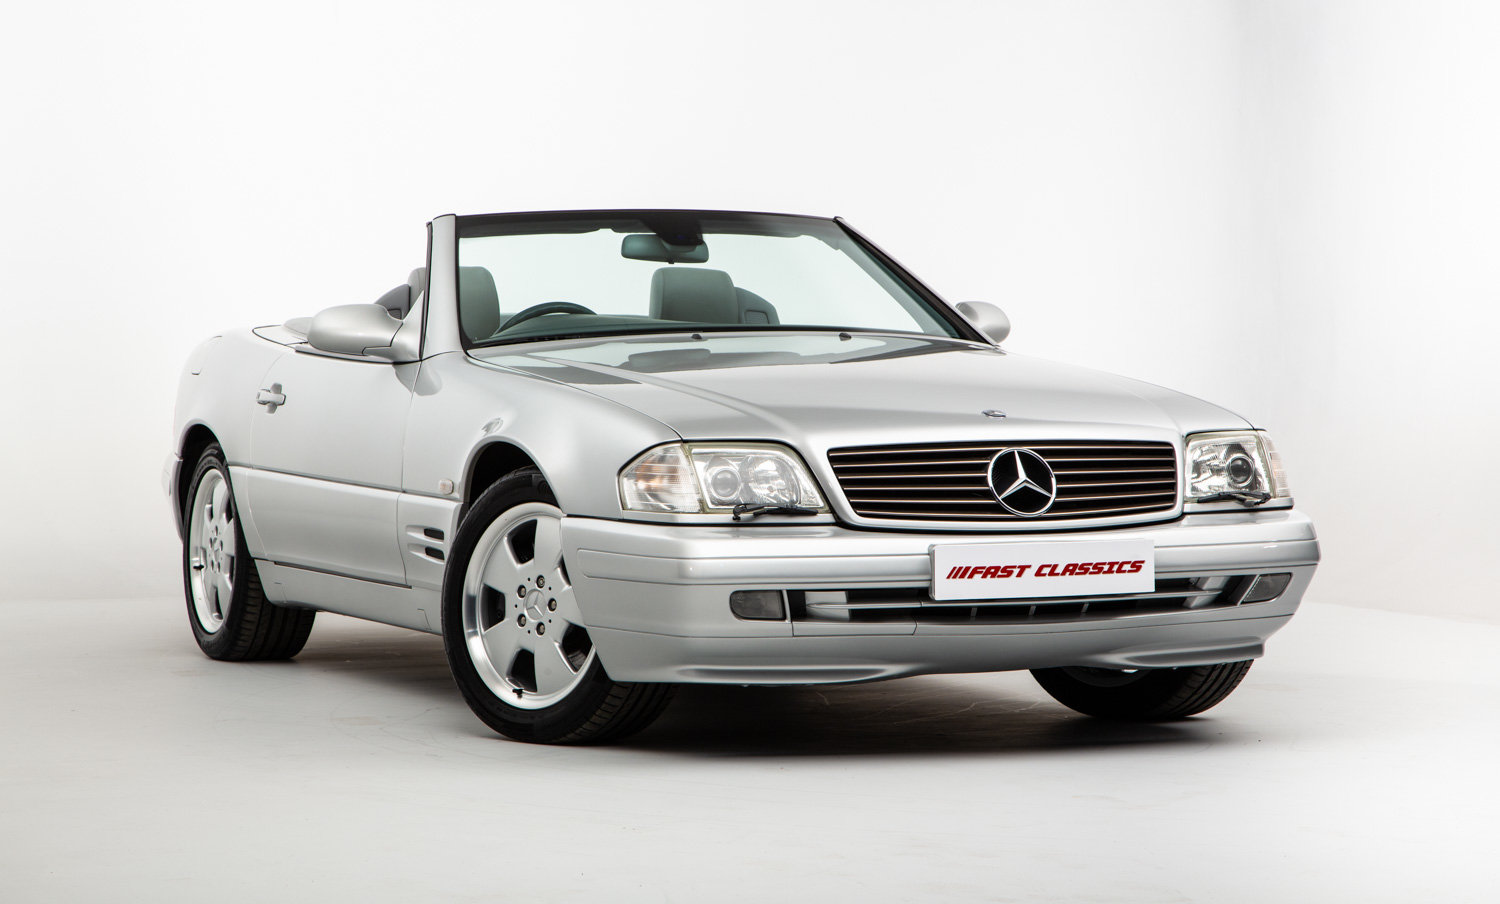 1999 MERCEDES SL320  For Sale (picture 2 of 22)